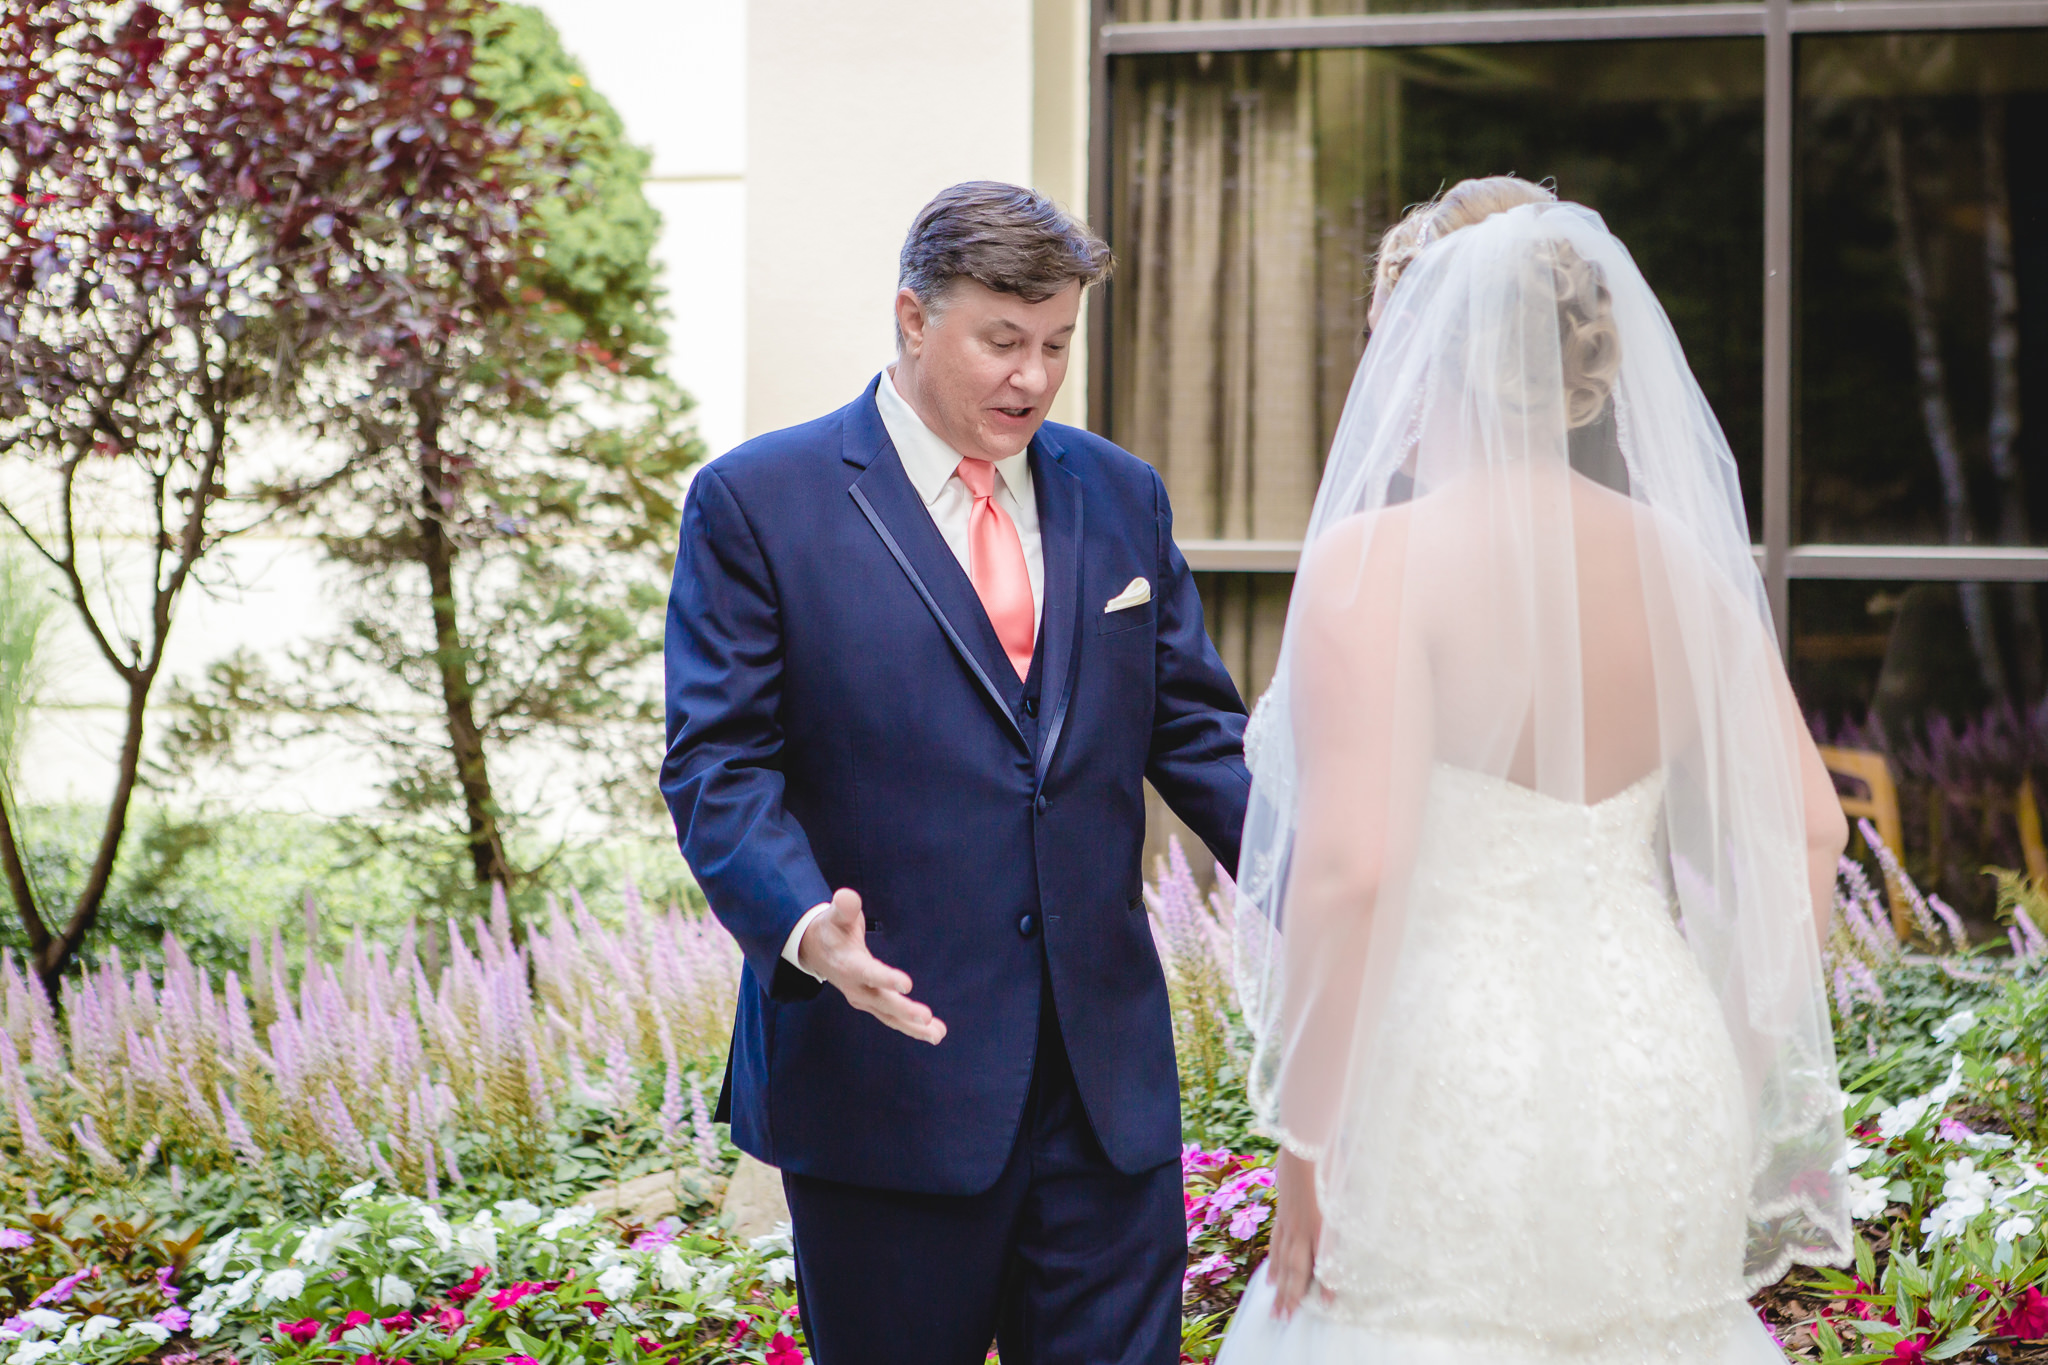 Dad reacting seeing his daughter dressed as a bride for the first time